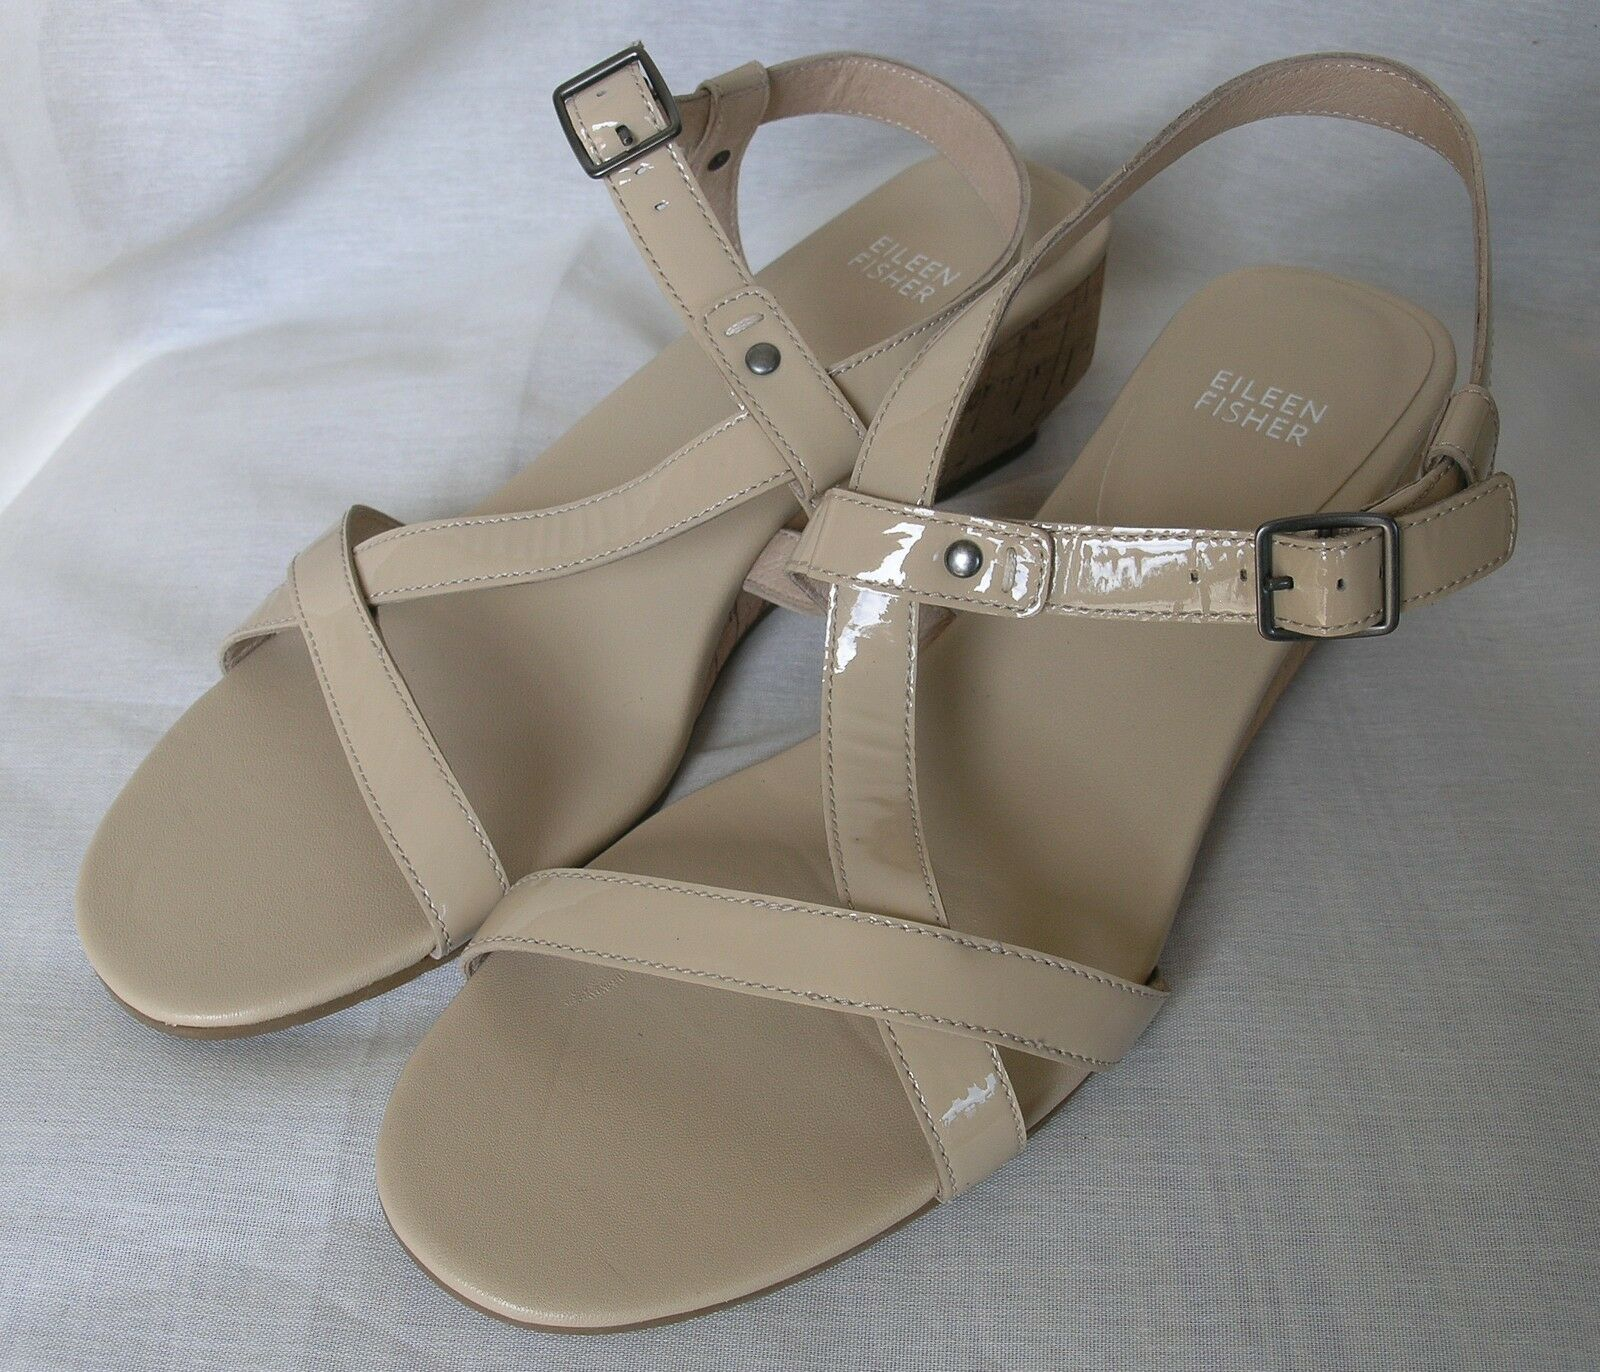 NEW EILEEN FISHER PATENT LEATHER SANDAL donna scarpe Dimensione 9.5